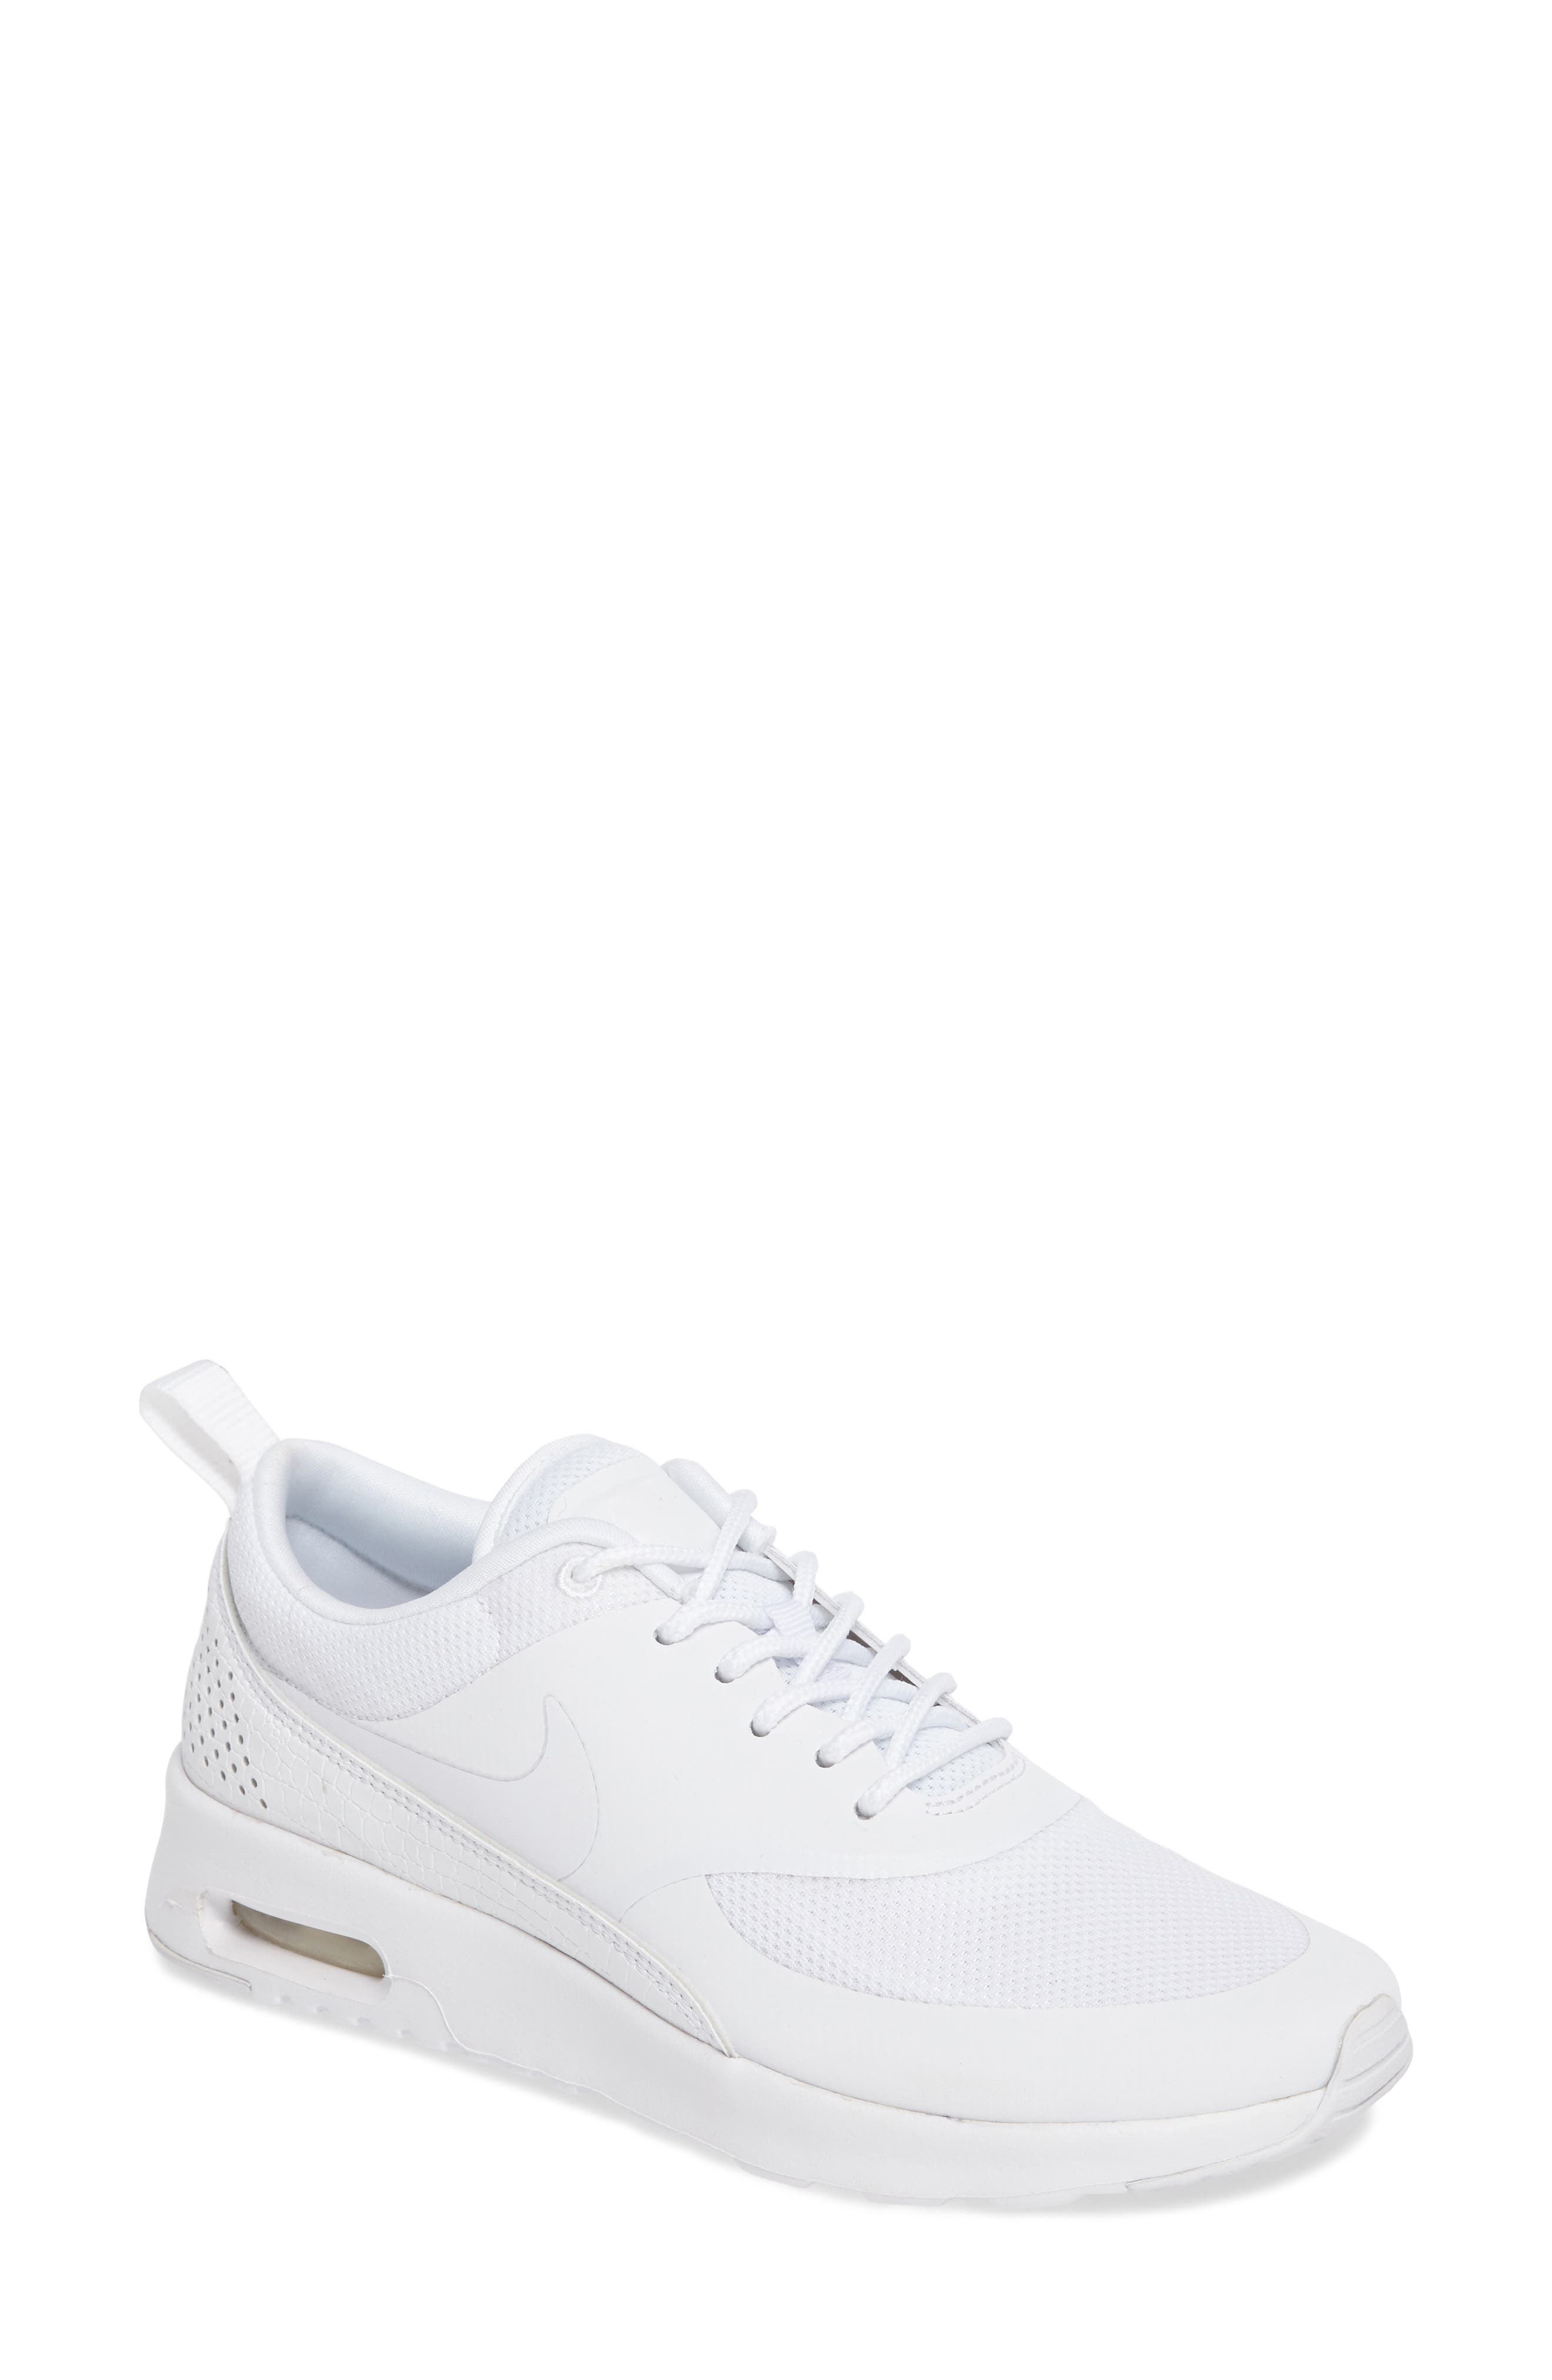 Nike Air Max Thea Sneaker (Women)